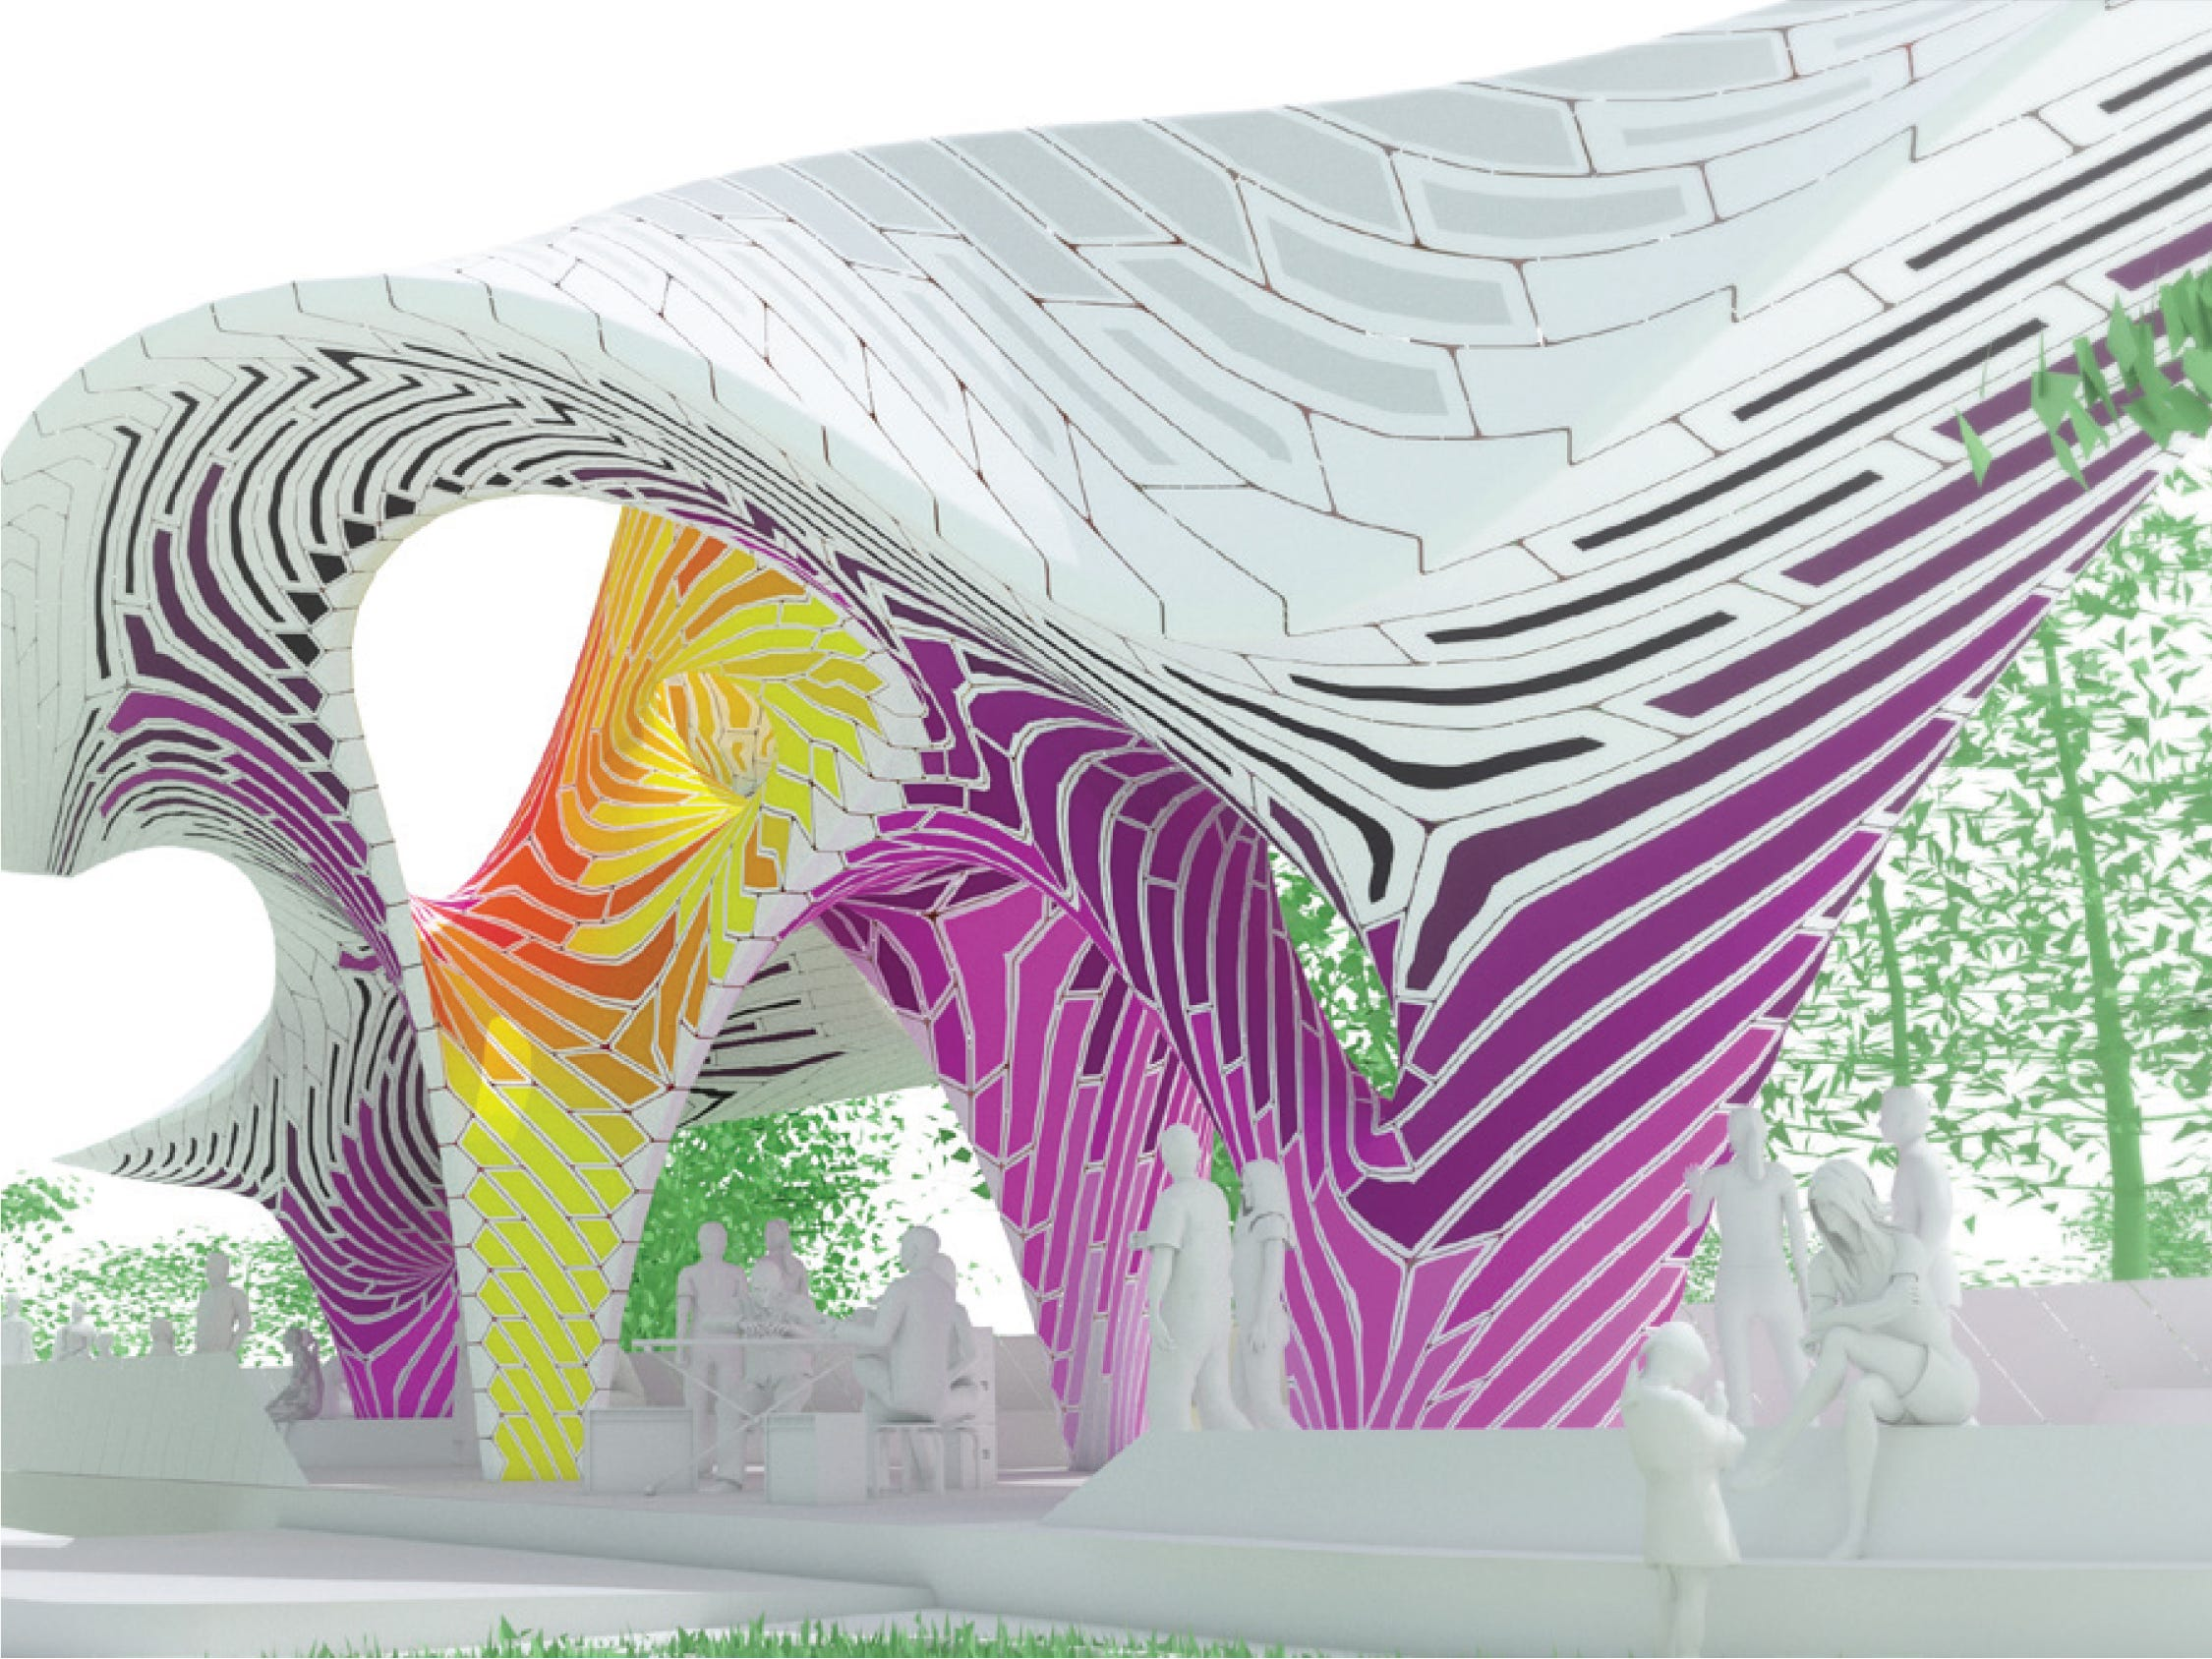 'Pier 865,' a sculpture created from stamped aluminum sheets by the Brooklyn, N.Y. firm THEVERYMANY, is being considered for what's now called the Cradle of Country Music Park in downtown Knoxville at the Summit Hill Drive-Gay Street intersection. While this drawing includes pink and purple, the stamped aluminum palette would be green, light green, yellow and white.